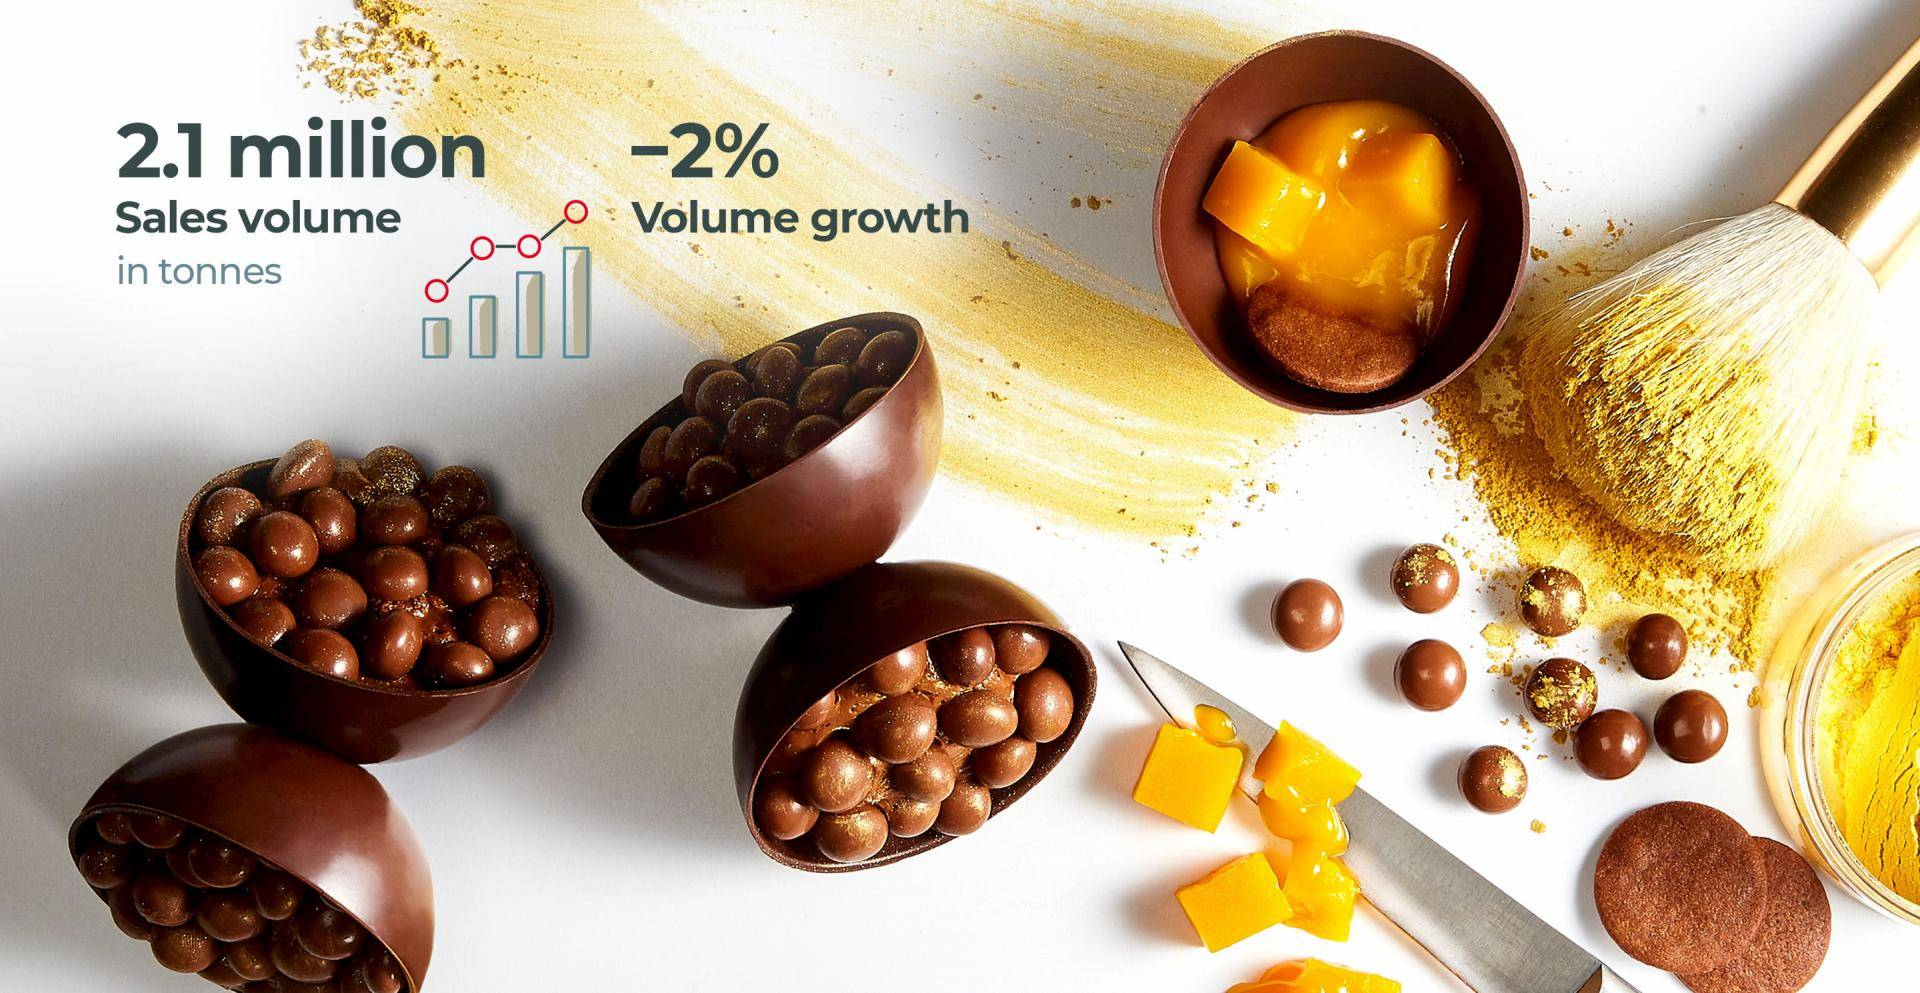 Sales Volume Fiscal Year 2019/20 Barry Callebaut